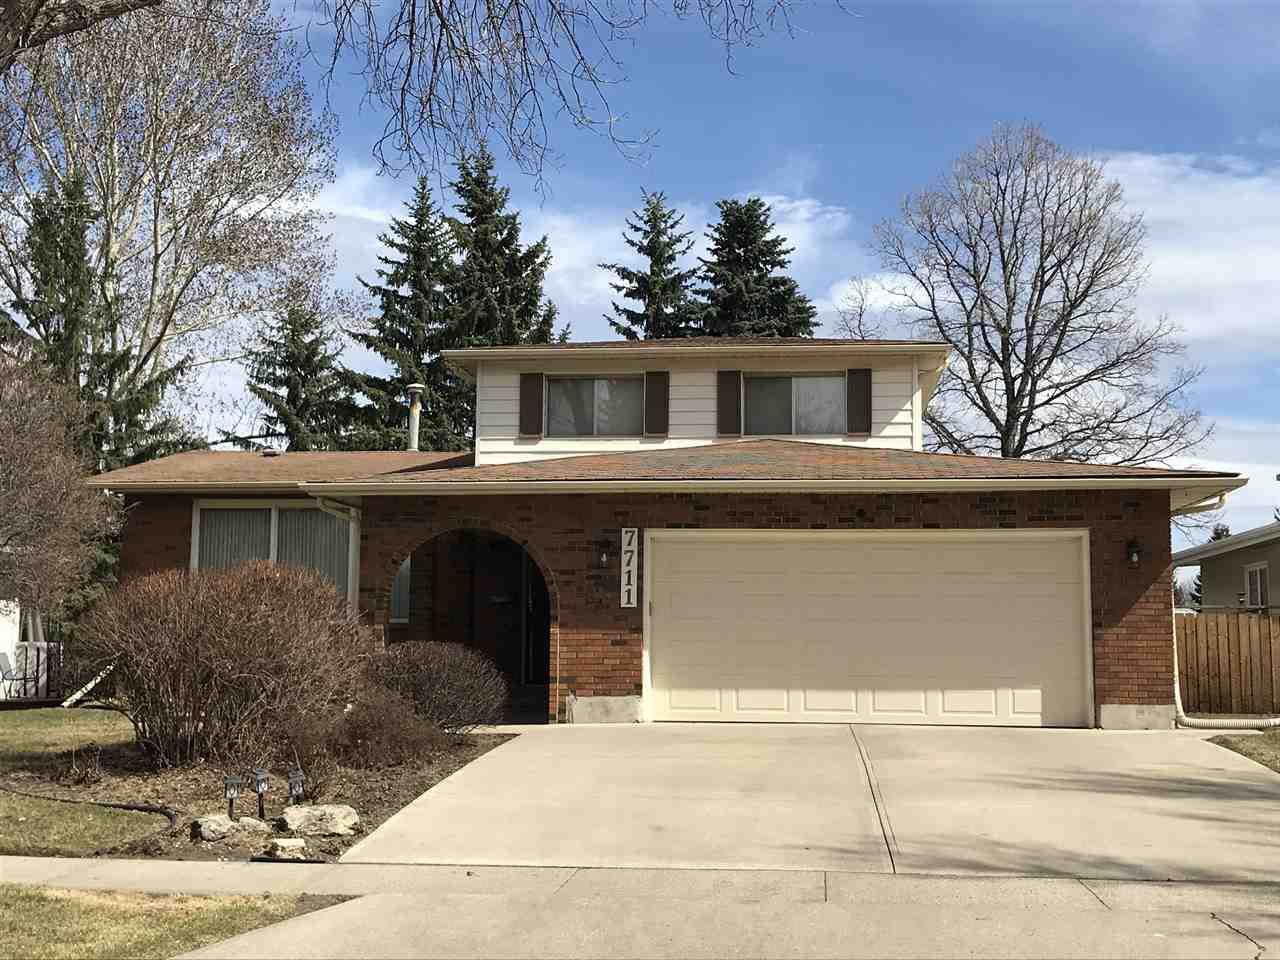 Main Photo: 7711 154A Street in Edmonton: Zone 22 House for sale : MLS®# E4153408